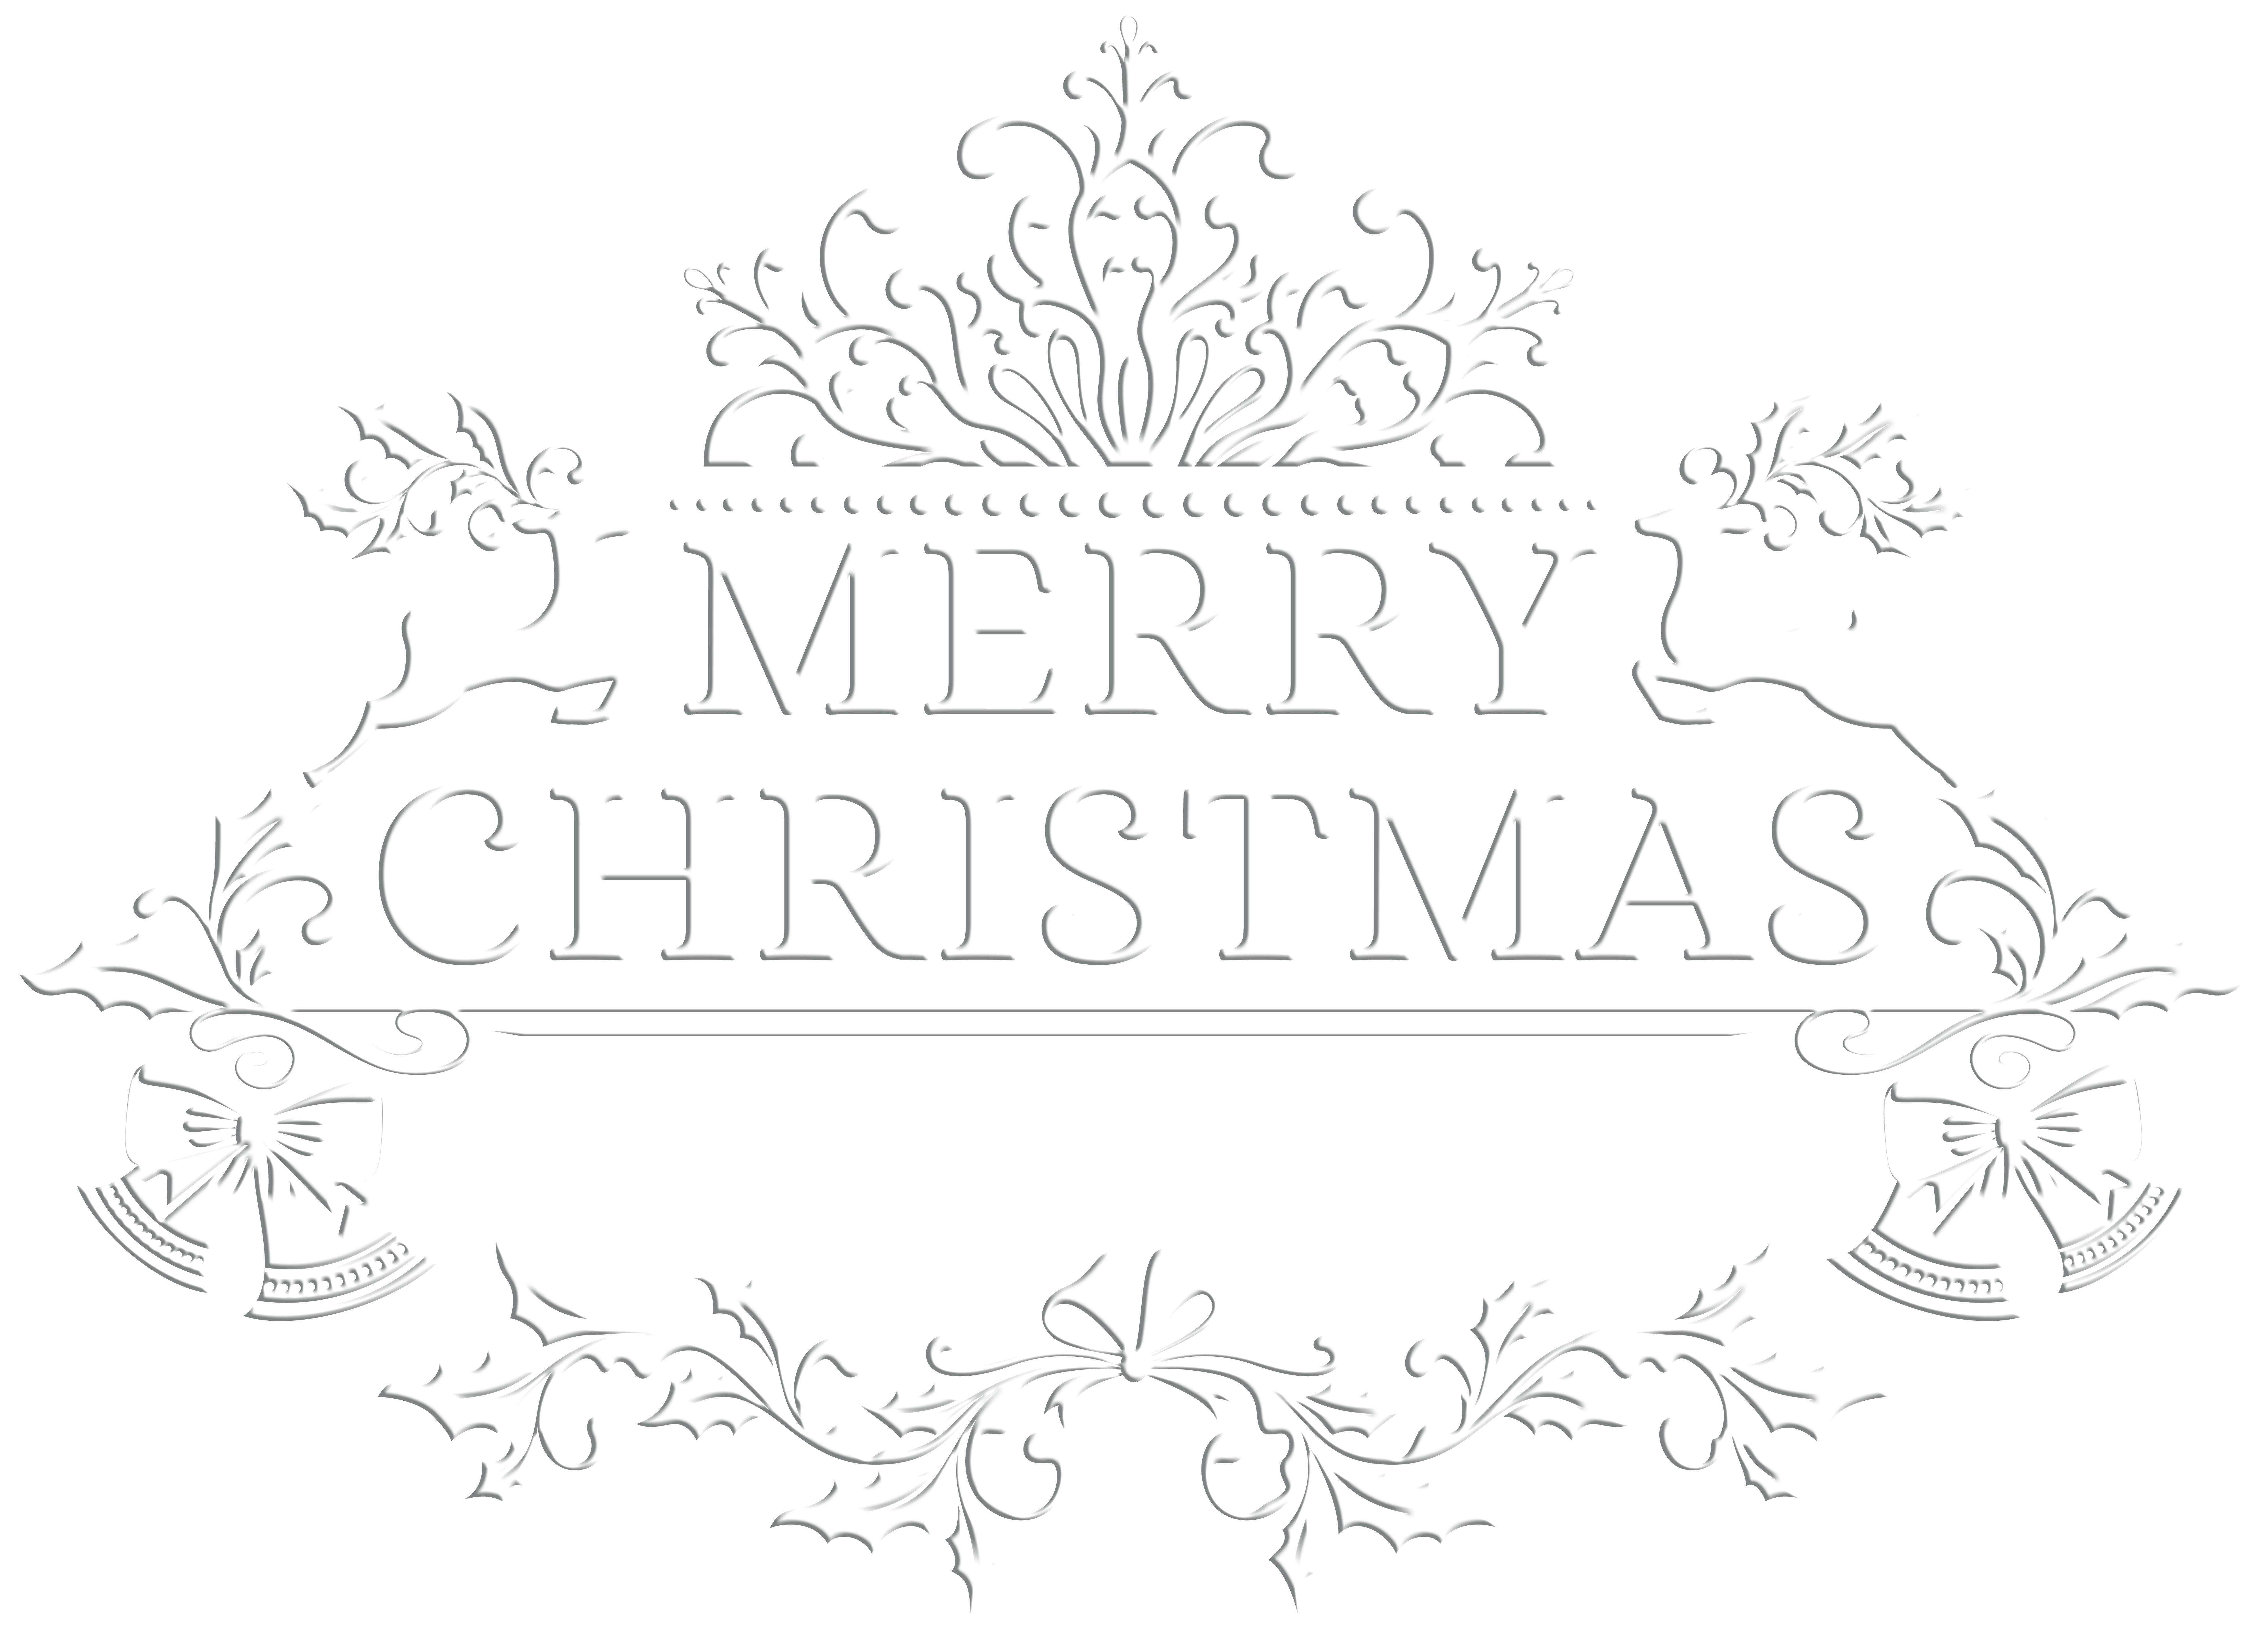 Merry christmas clipart black and white clip free library Merry Christmas White Transparent PNG Clip Art Image | Gallery ... clip free library